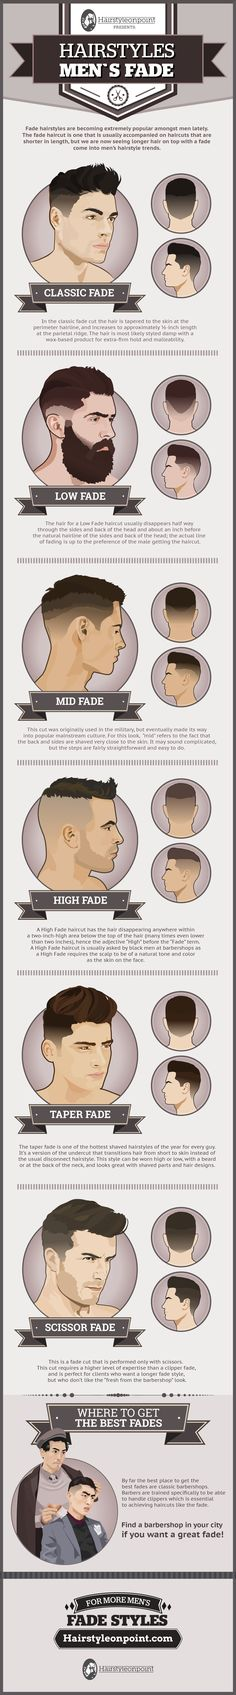 The Fade: The Trendiest Hairstyle For Men Right Now